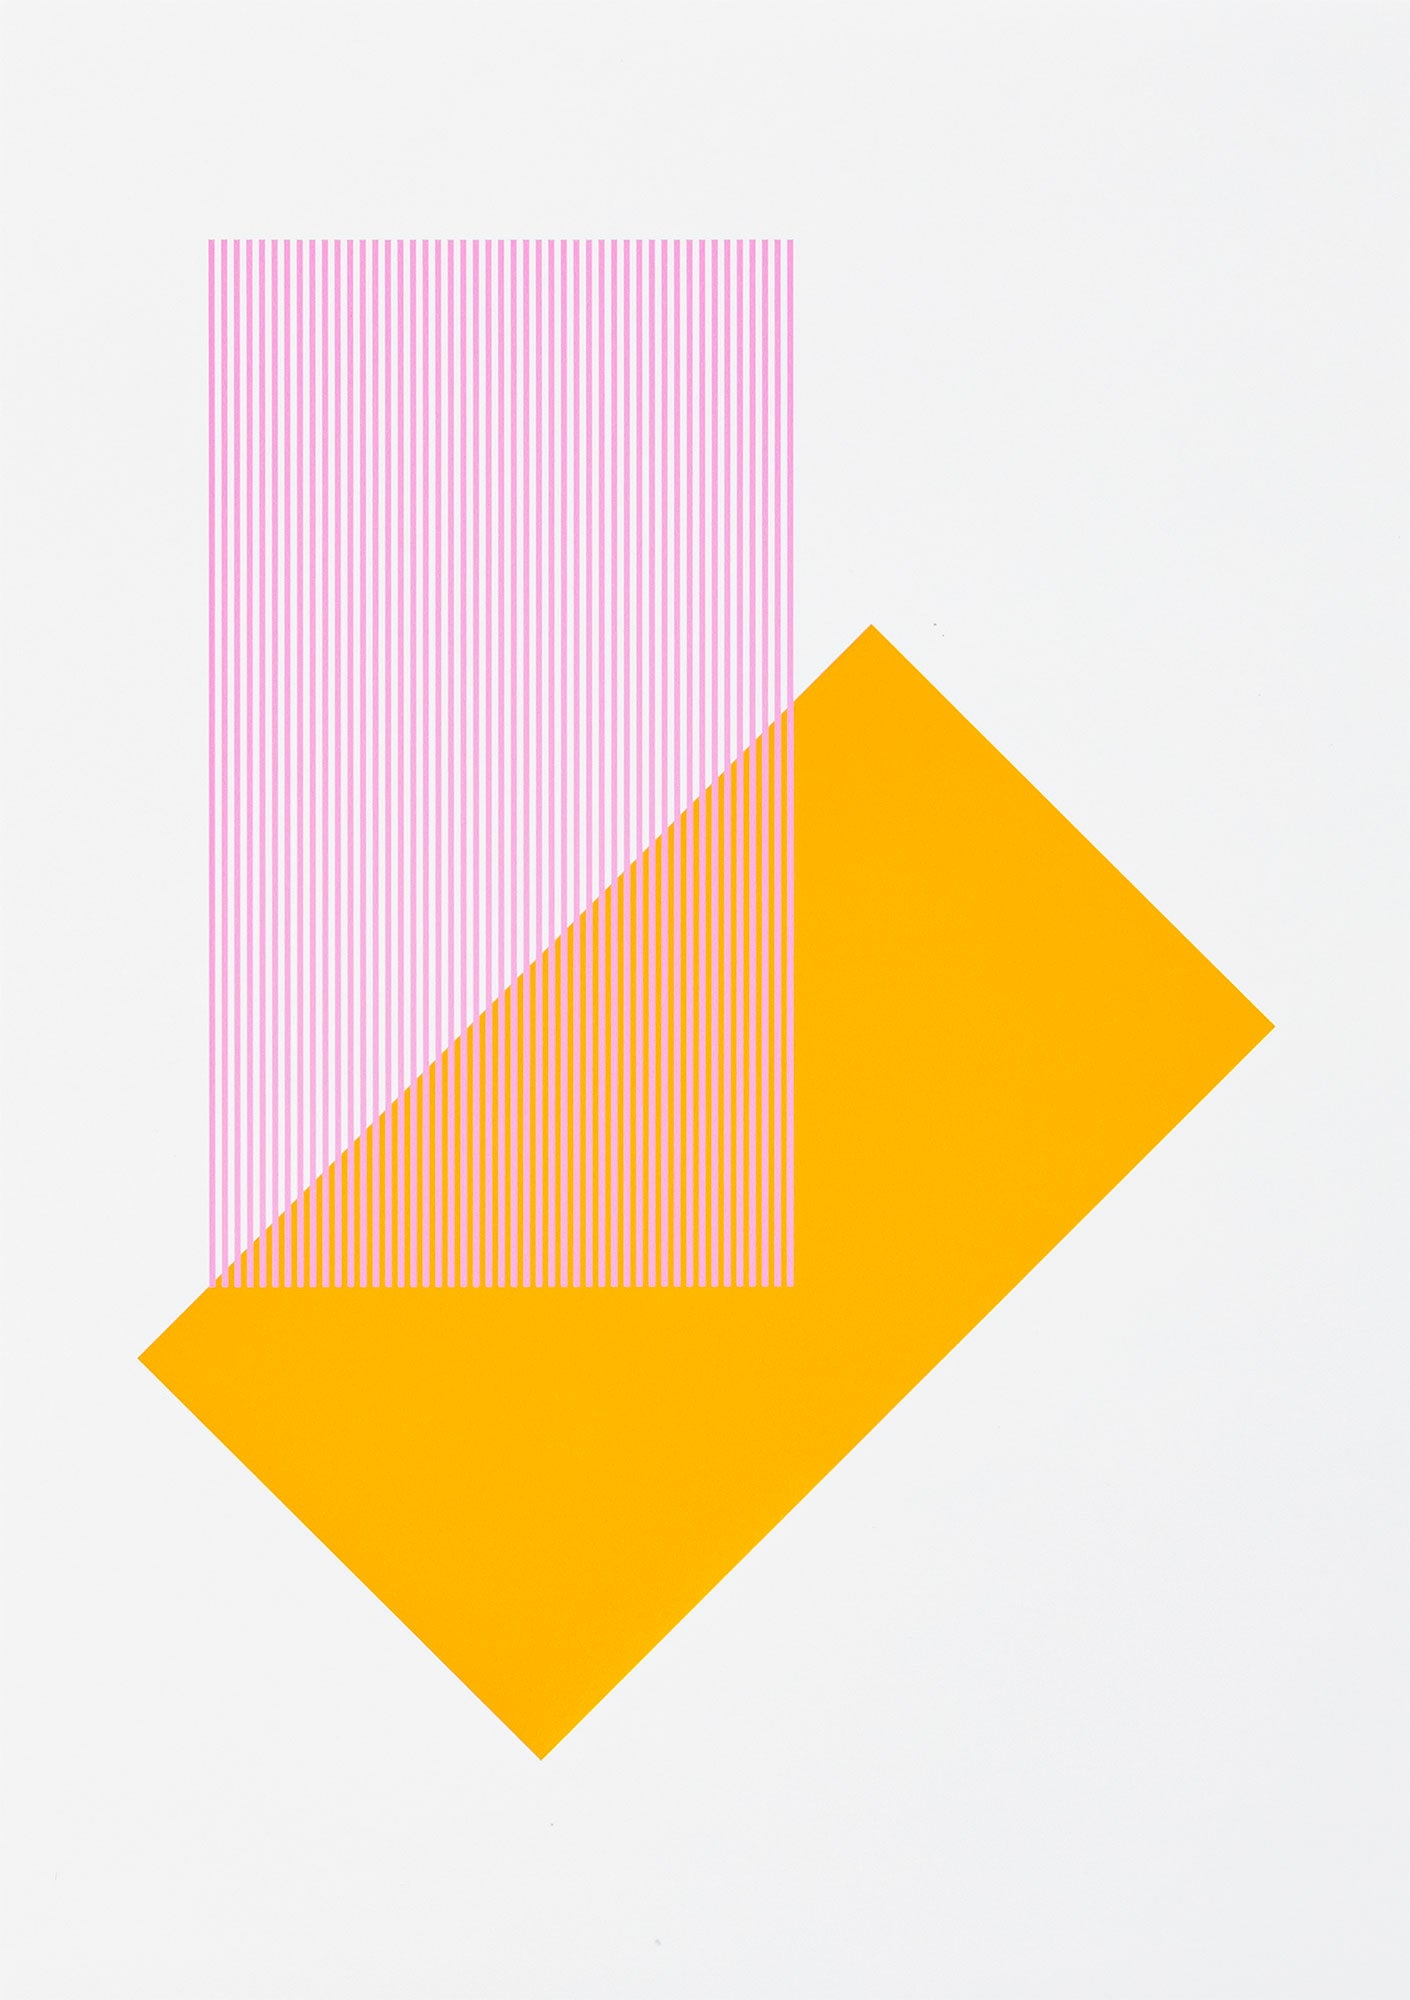 Solids & Strokes – Small – Yellow & Bright Pink